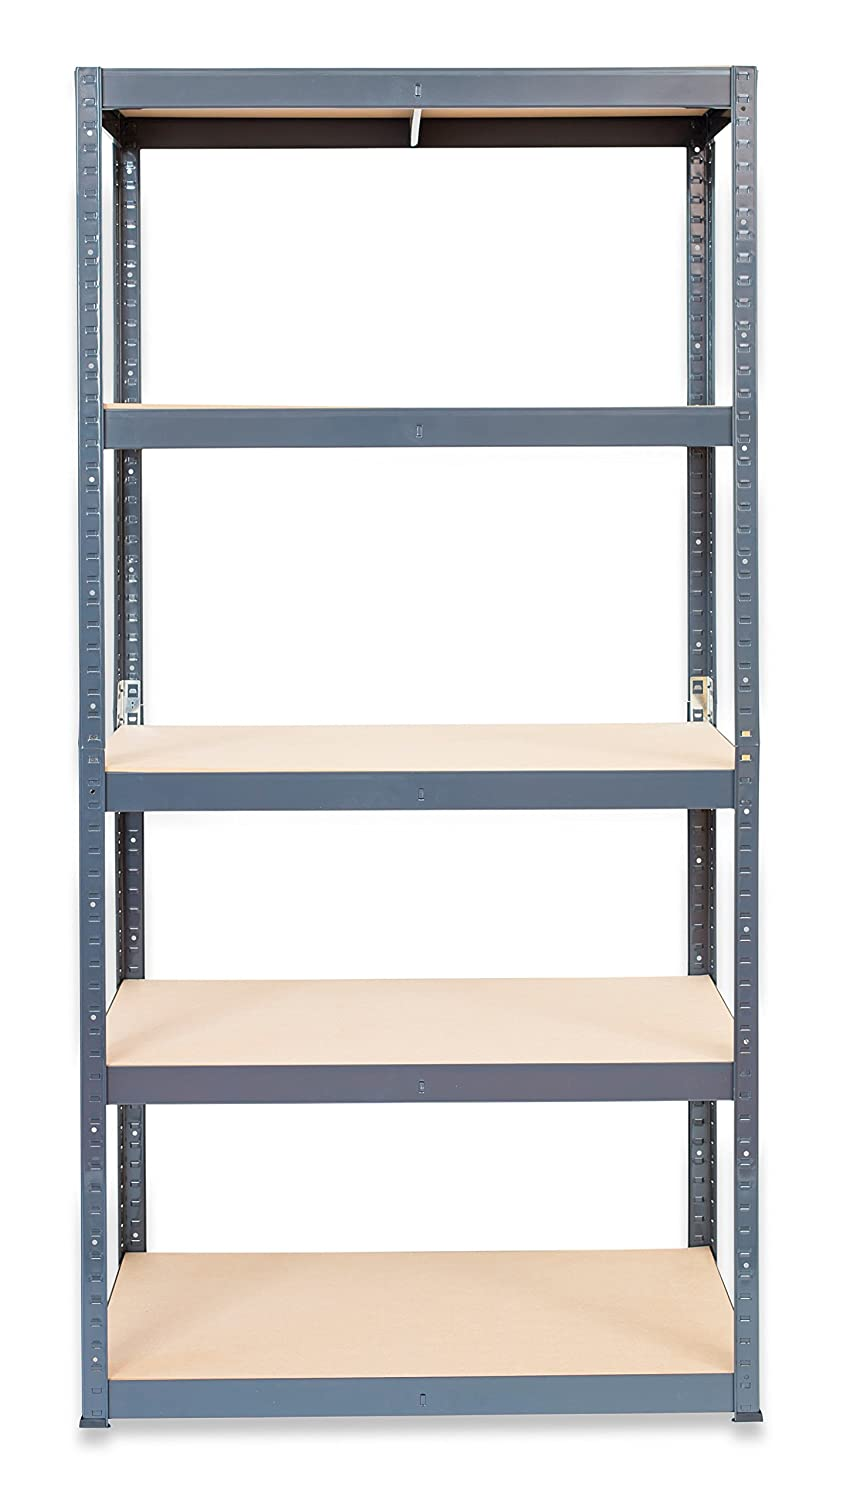 window drawing easy. pack of 3 storalex® 45cm deep garage shelving racking units - uk\u0027s bestselling storage shelves 265kg per shelf (evenly distributed) 5 tier window drawing easy i